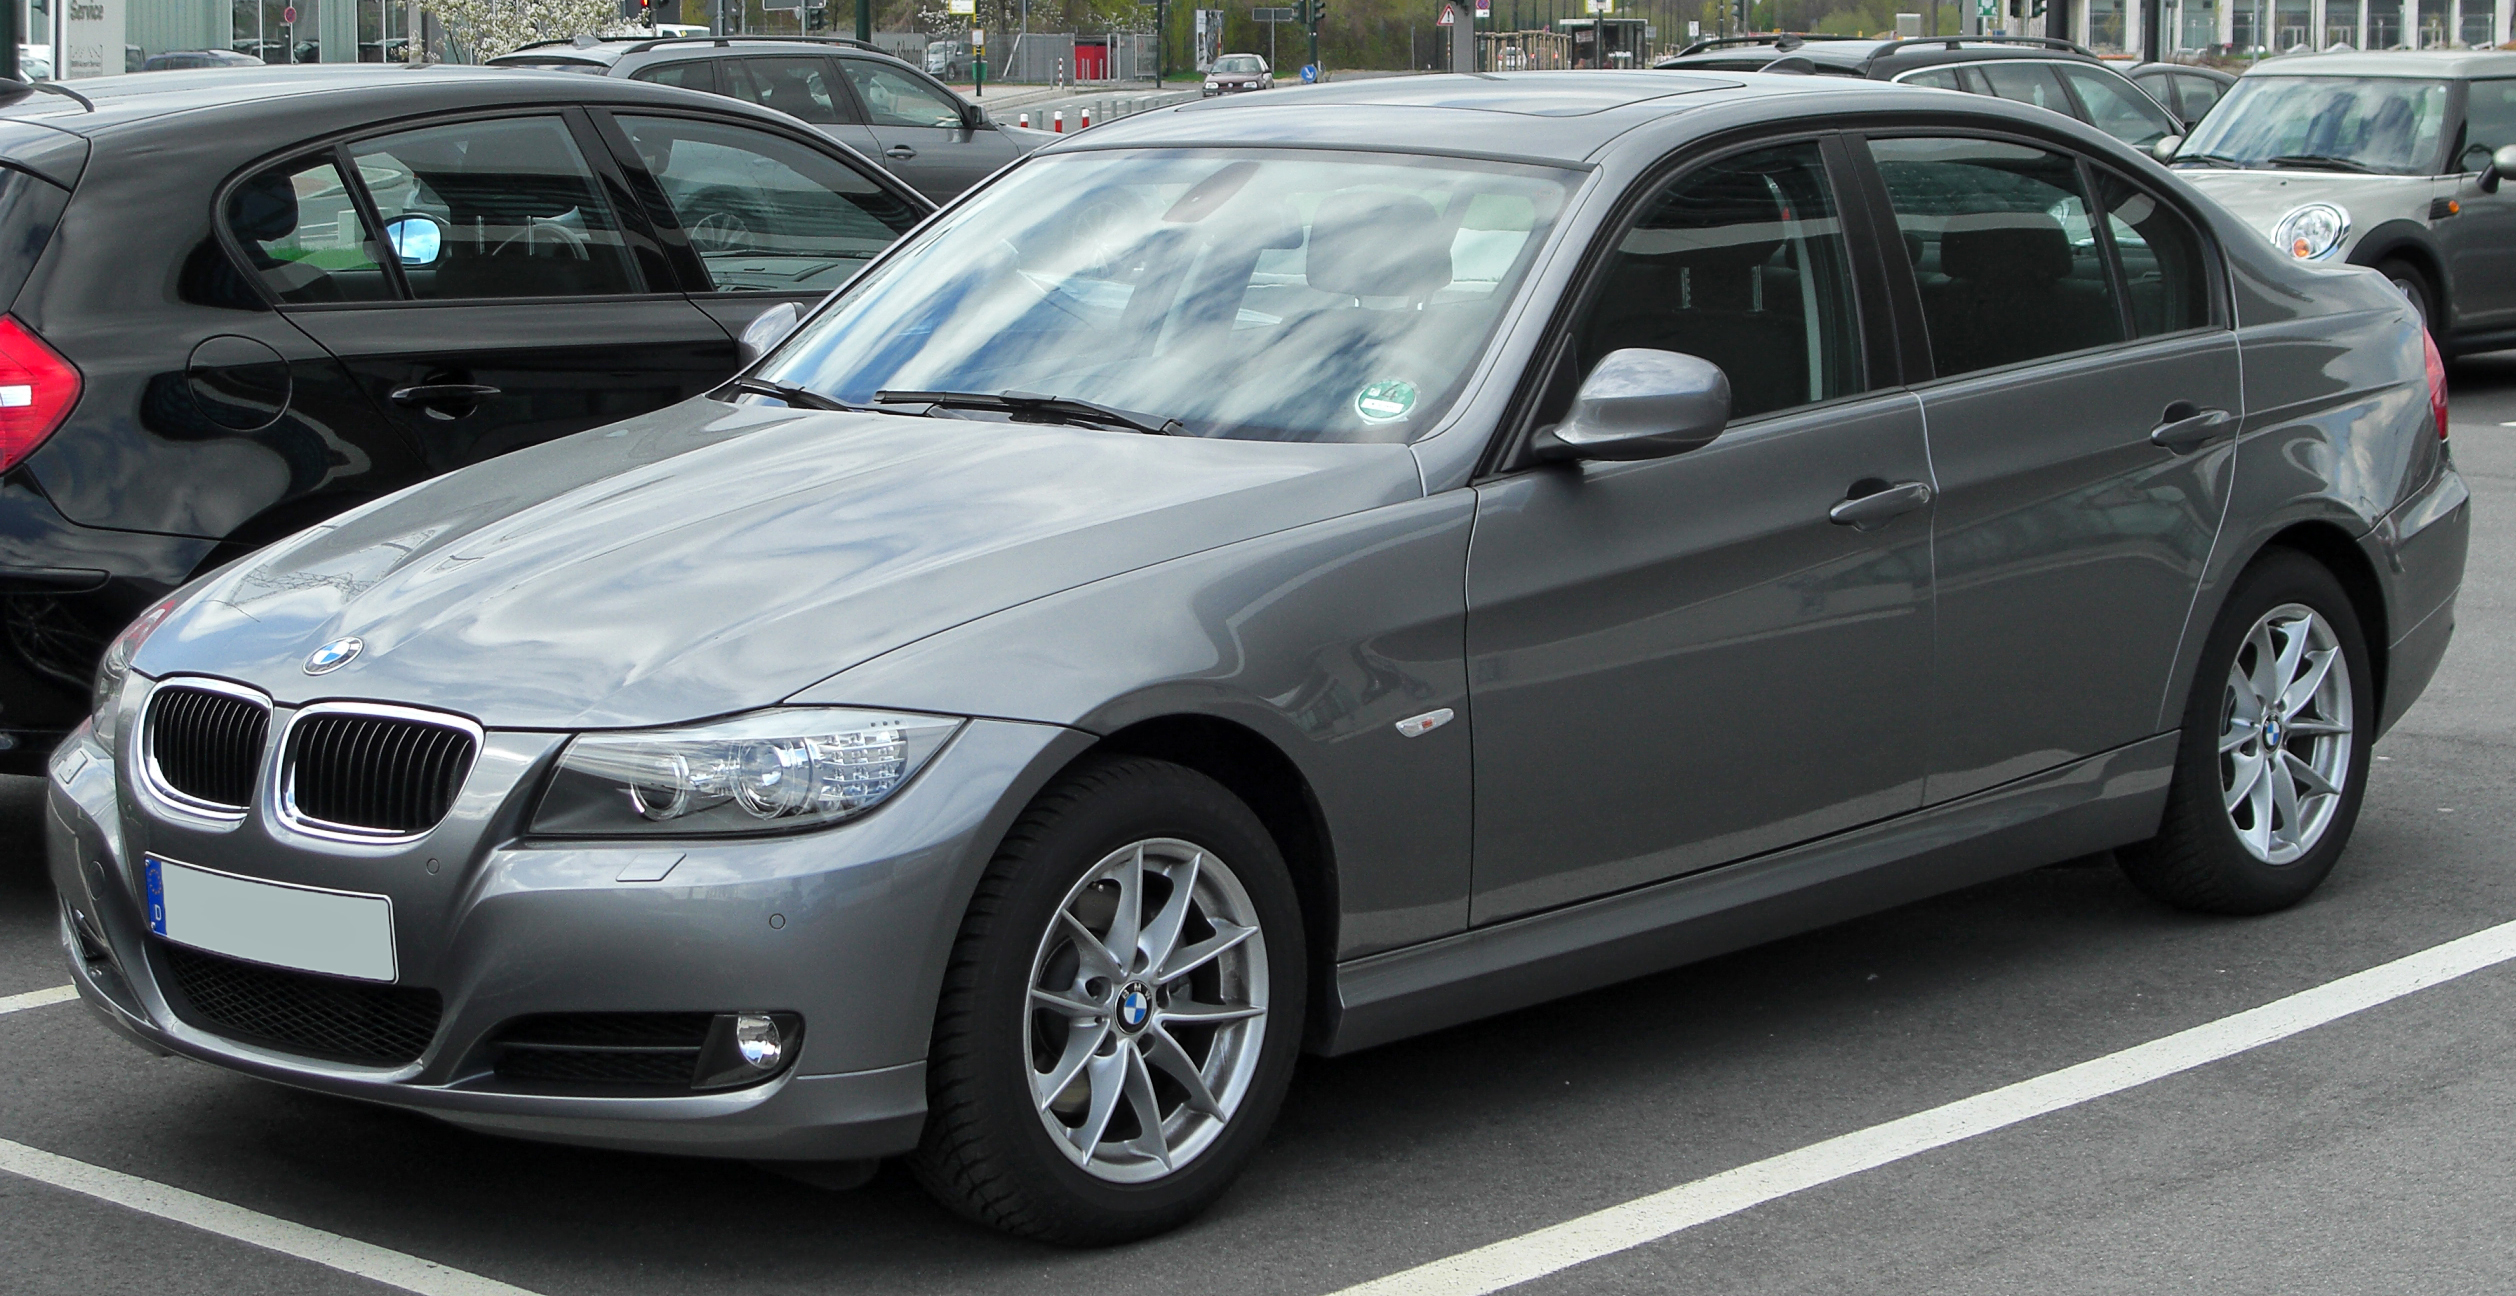 File Bmw 320i E90 Facelift Front 20100410 Jpg Wikimedia Commons